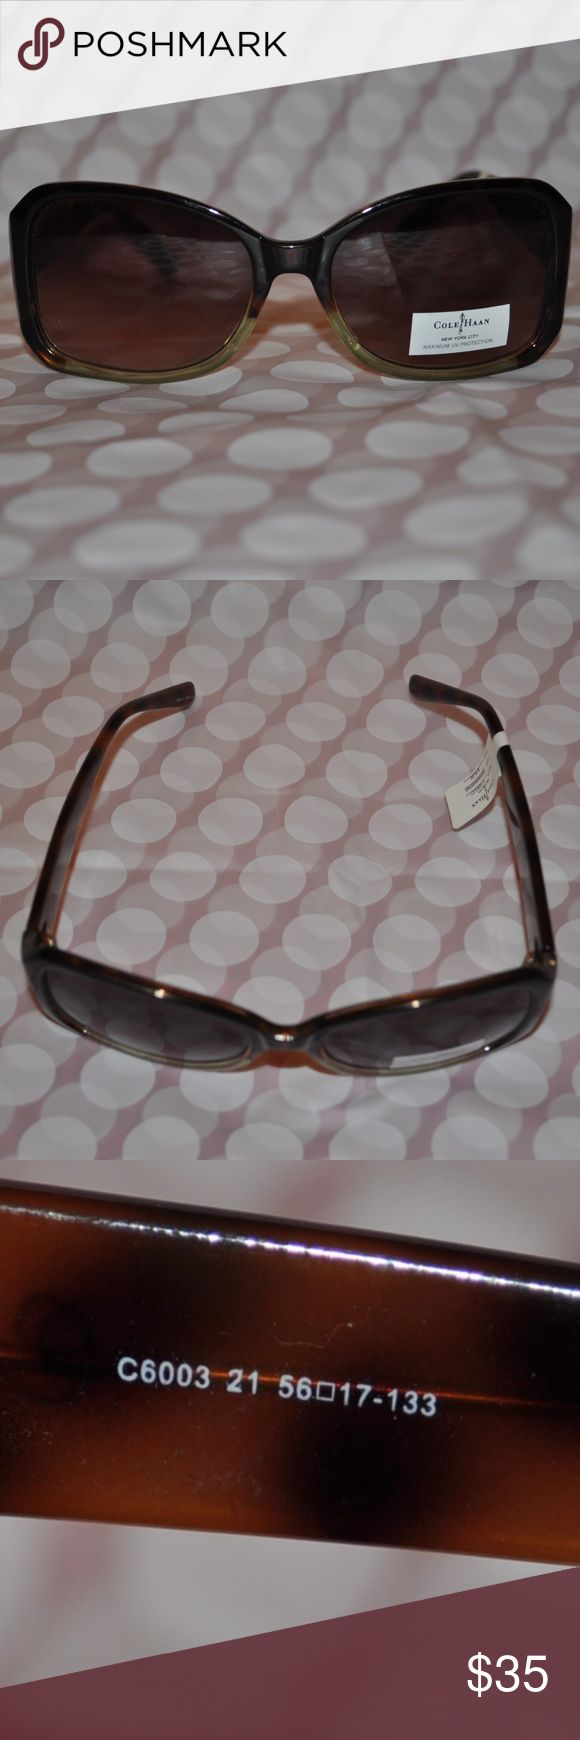 Cole Haan Women's Sunglasses Genuine Cole Haan Women's Sunglasses, Style No. 6003,Tortoise and Green Fade Frame/Brown Gradient Lens.  Plastic frame and temples.  Size:  56mm -  17mm - 133mm. New, unused with tags from pet-free, smoke-free home. Cole Haan Accessories Sunglasses